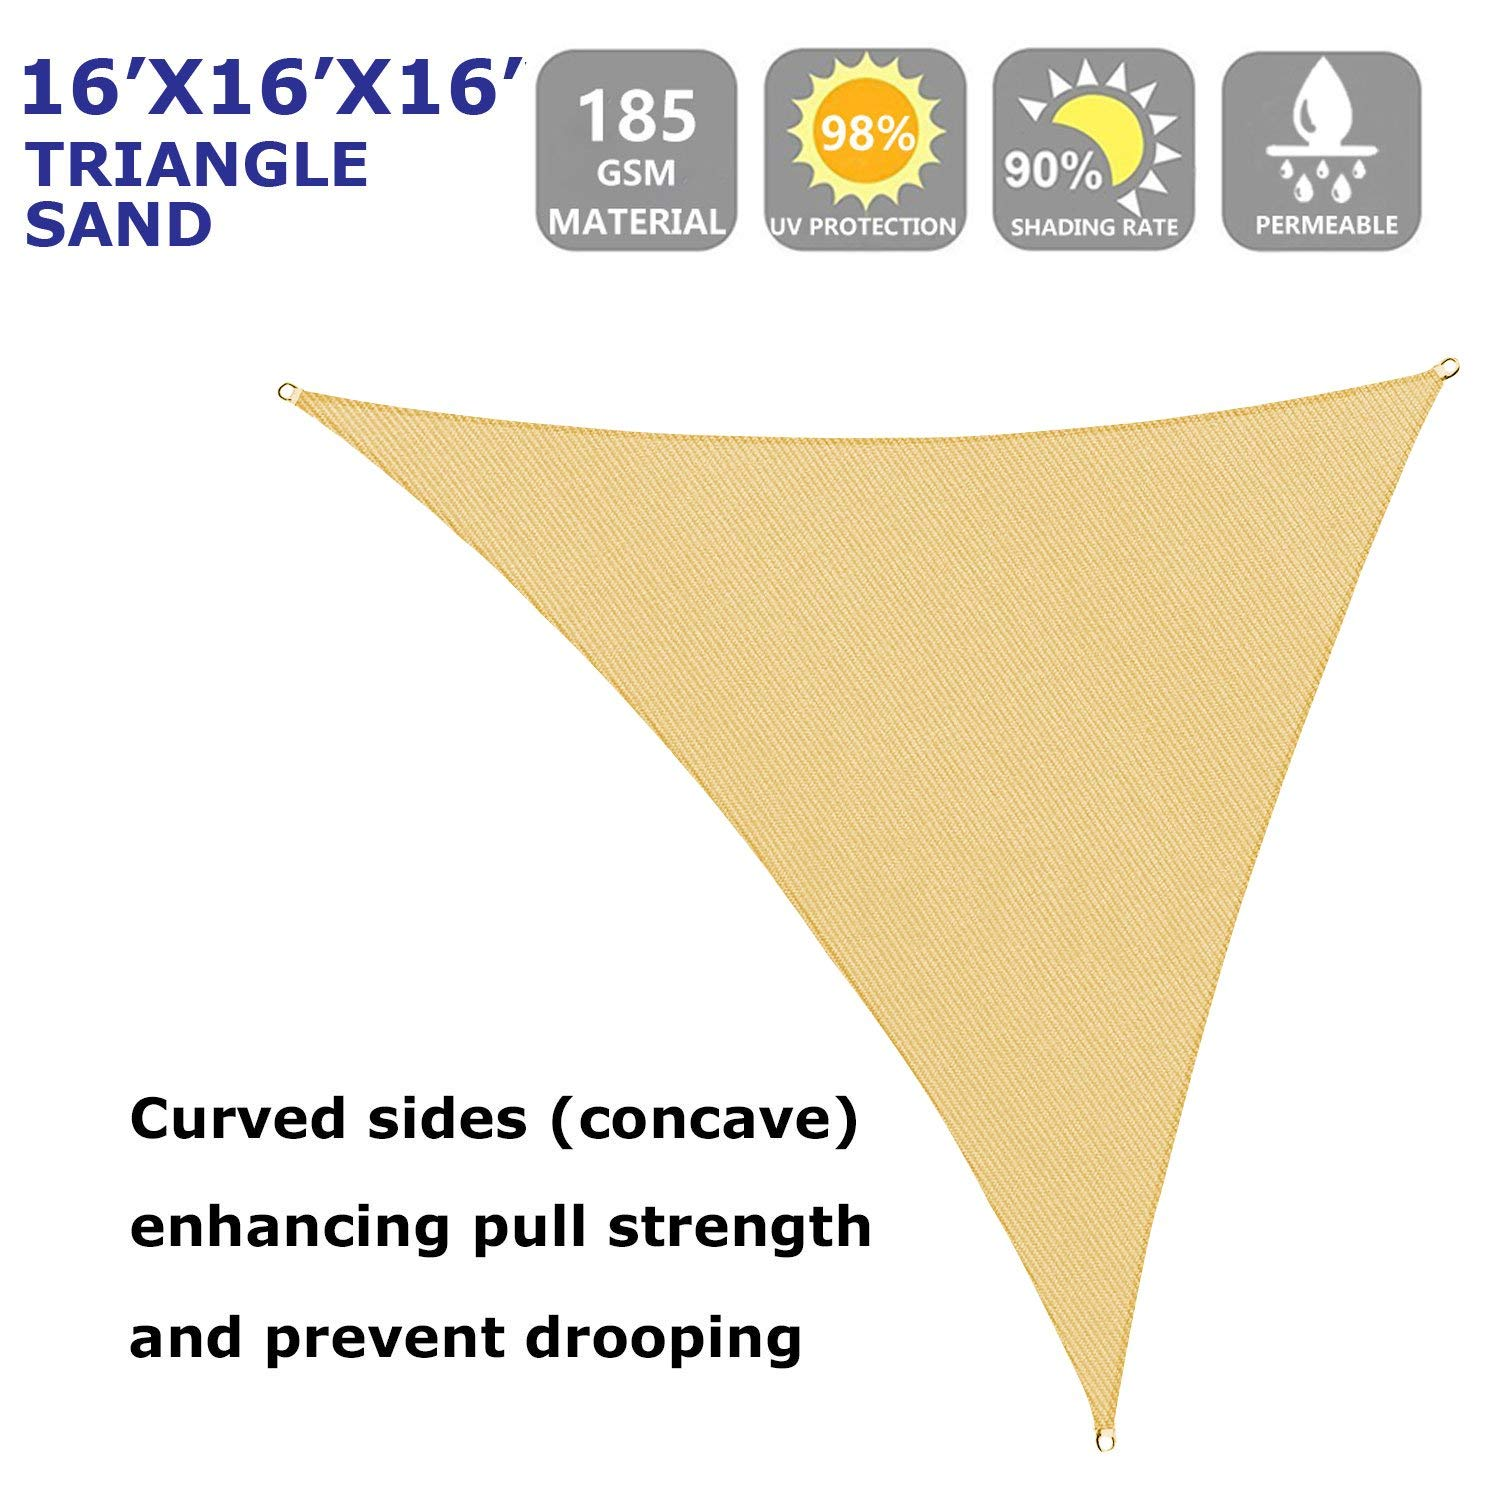 Shade Beyond 16 x 16 x 16 Sand Color Triangle Sun Shade Sail for Patio UV Block for Outdoor Facility and Activities